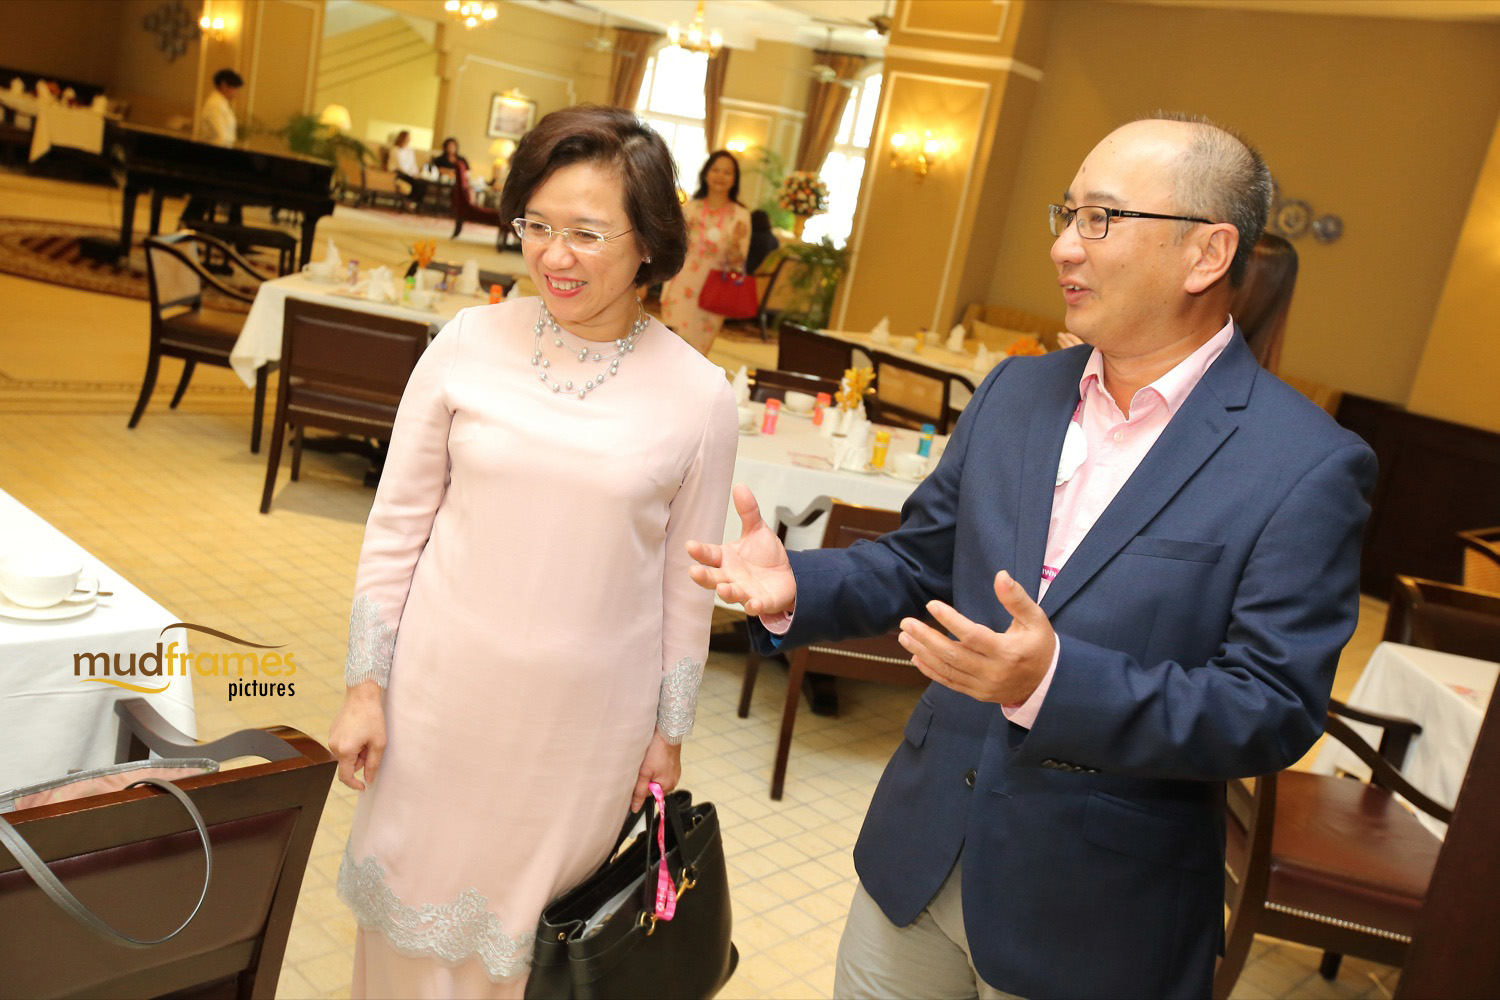 Prof Datin Dr Adeeba Kamarulzaman and Chris Tan at MSD's Merck Women's Network event